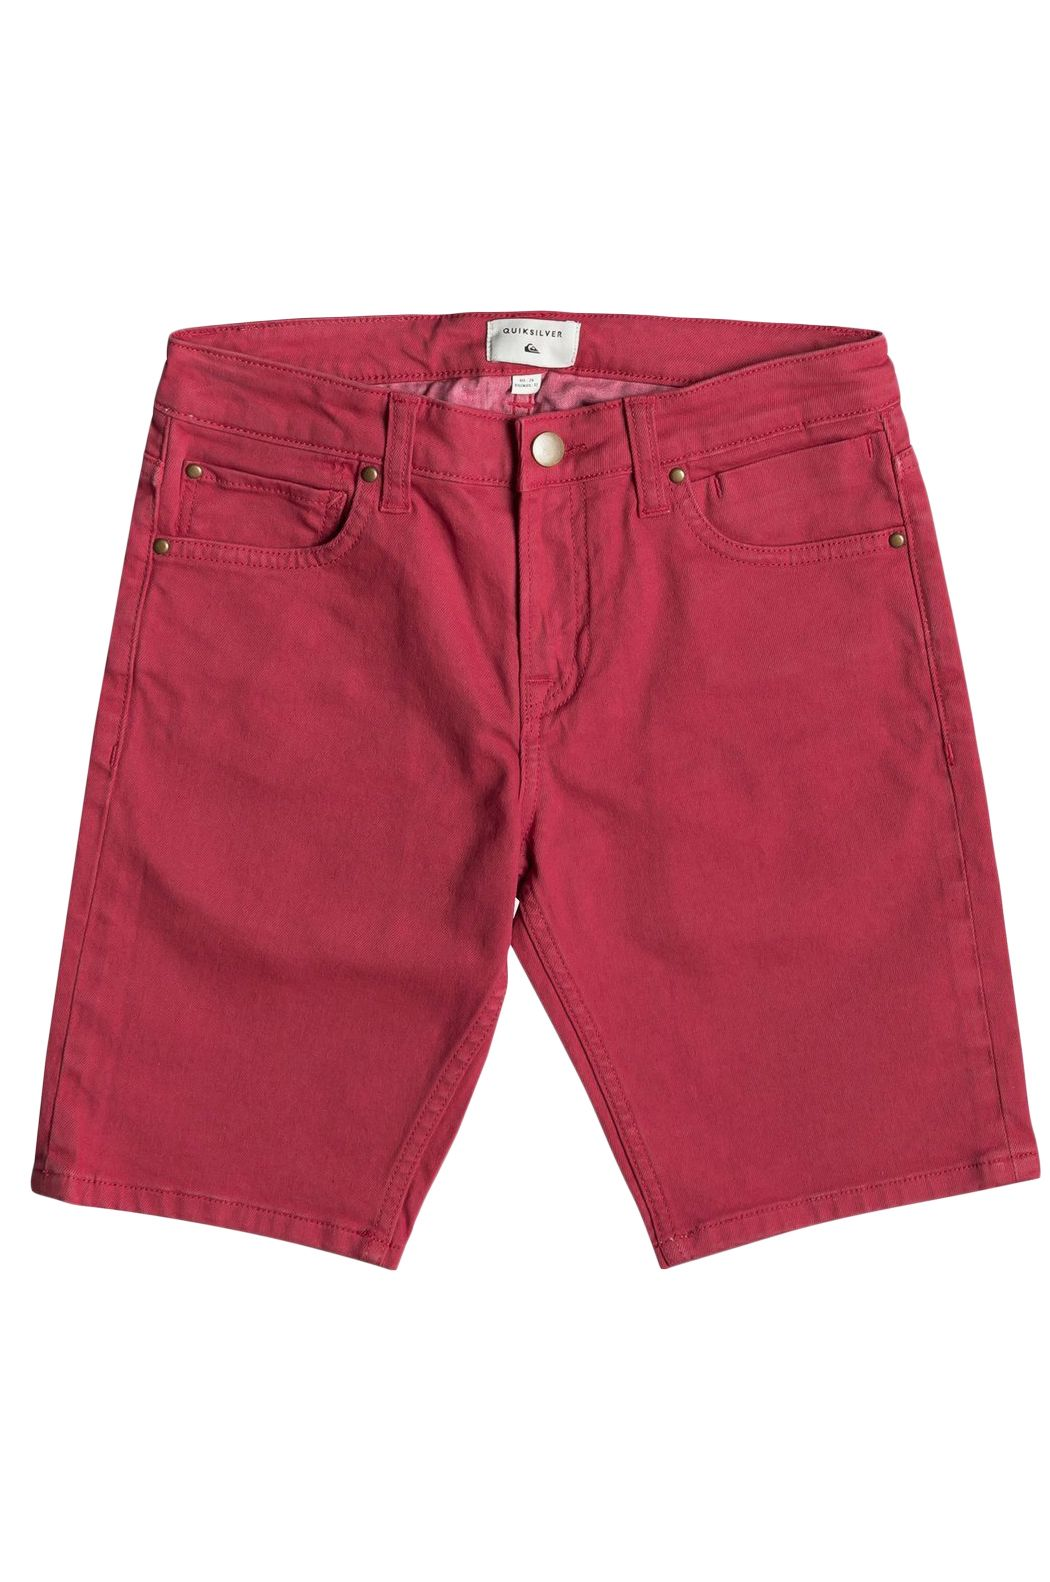 Walkshorts Quiksilver DISTCOLORSHORTY B DNST Brick Red